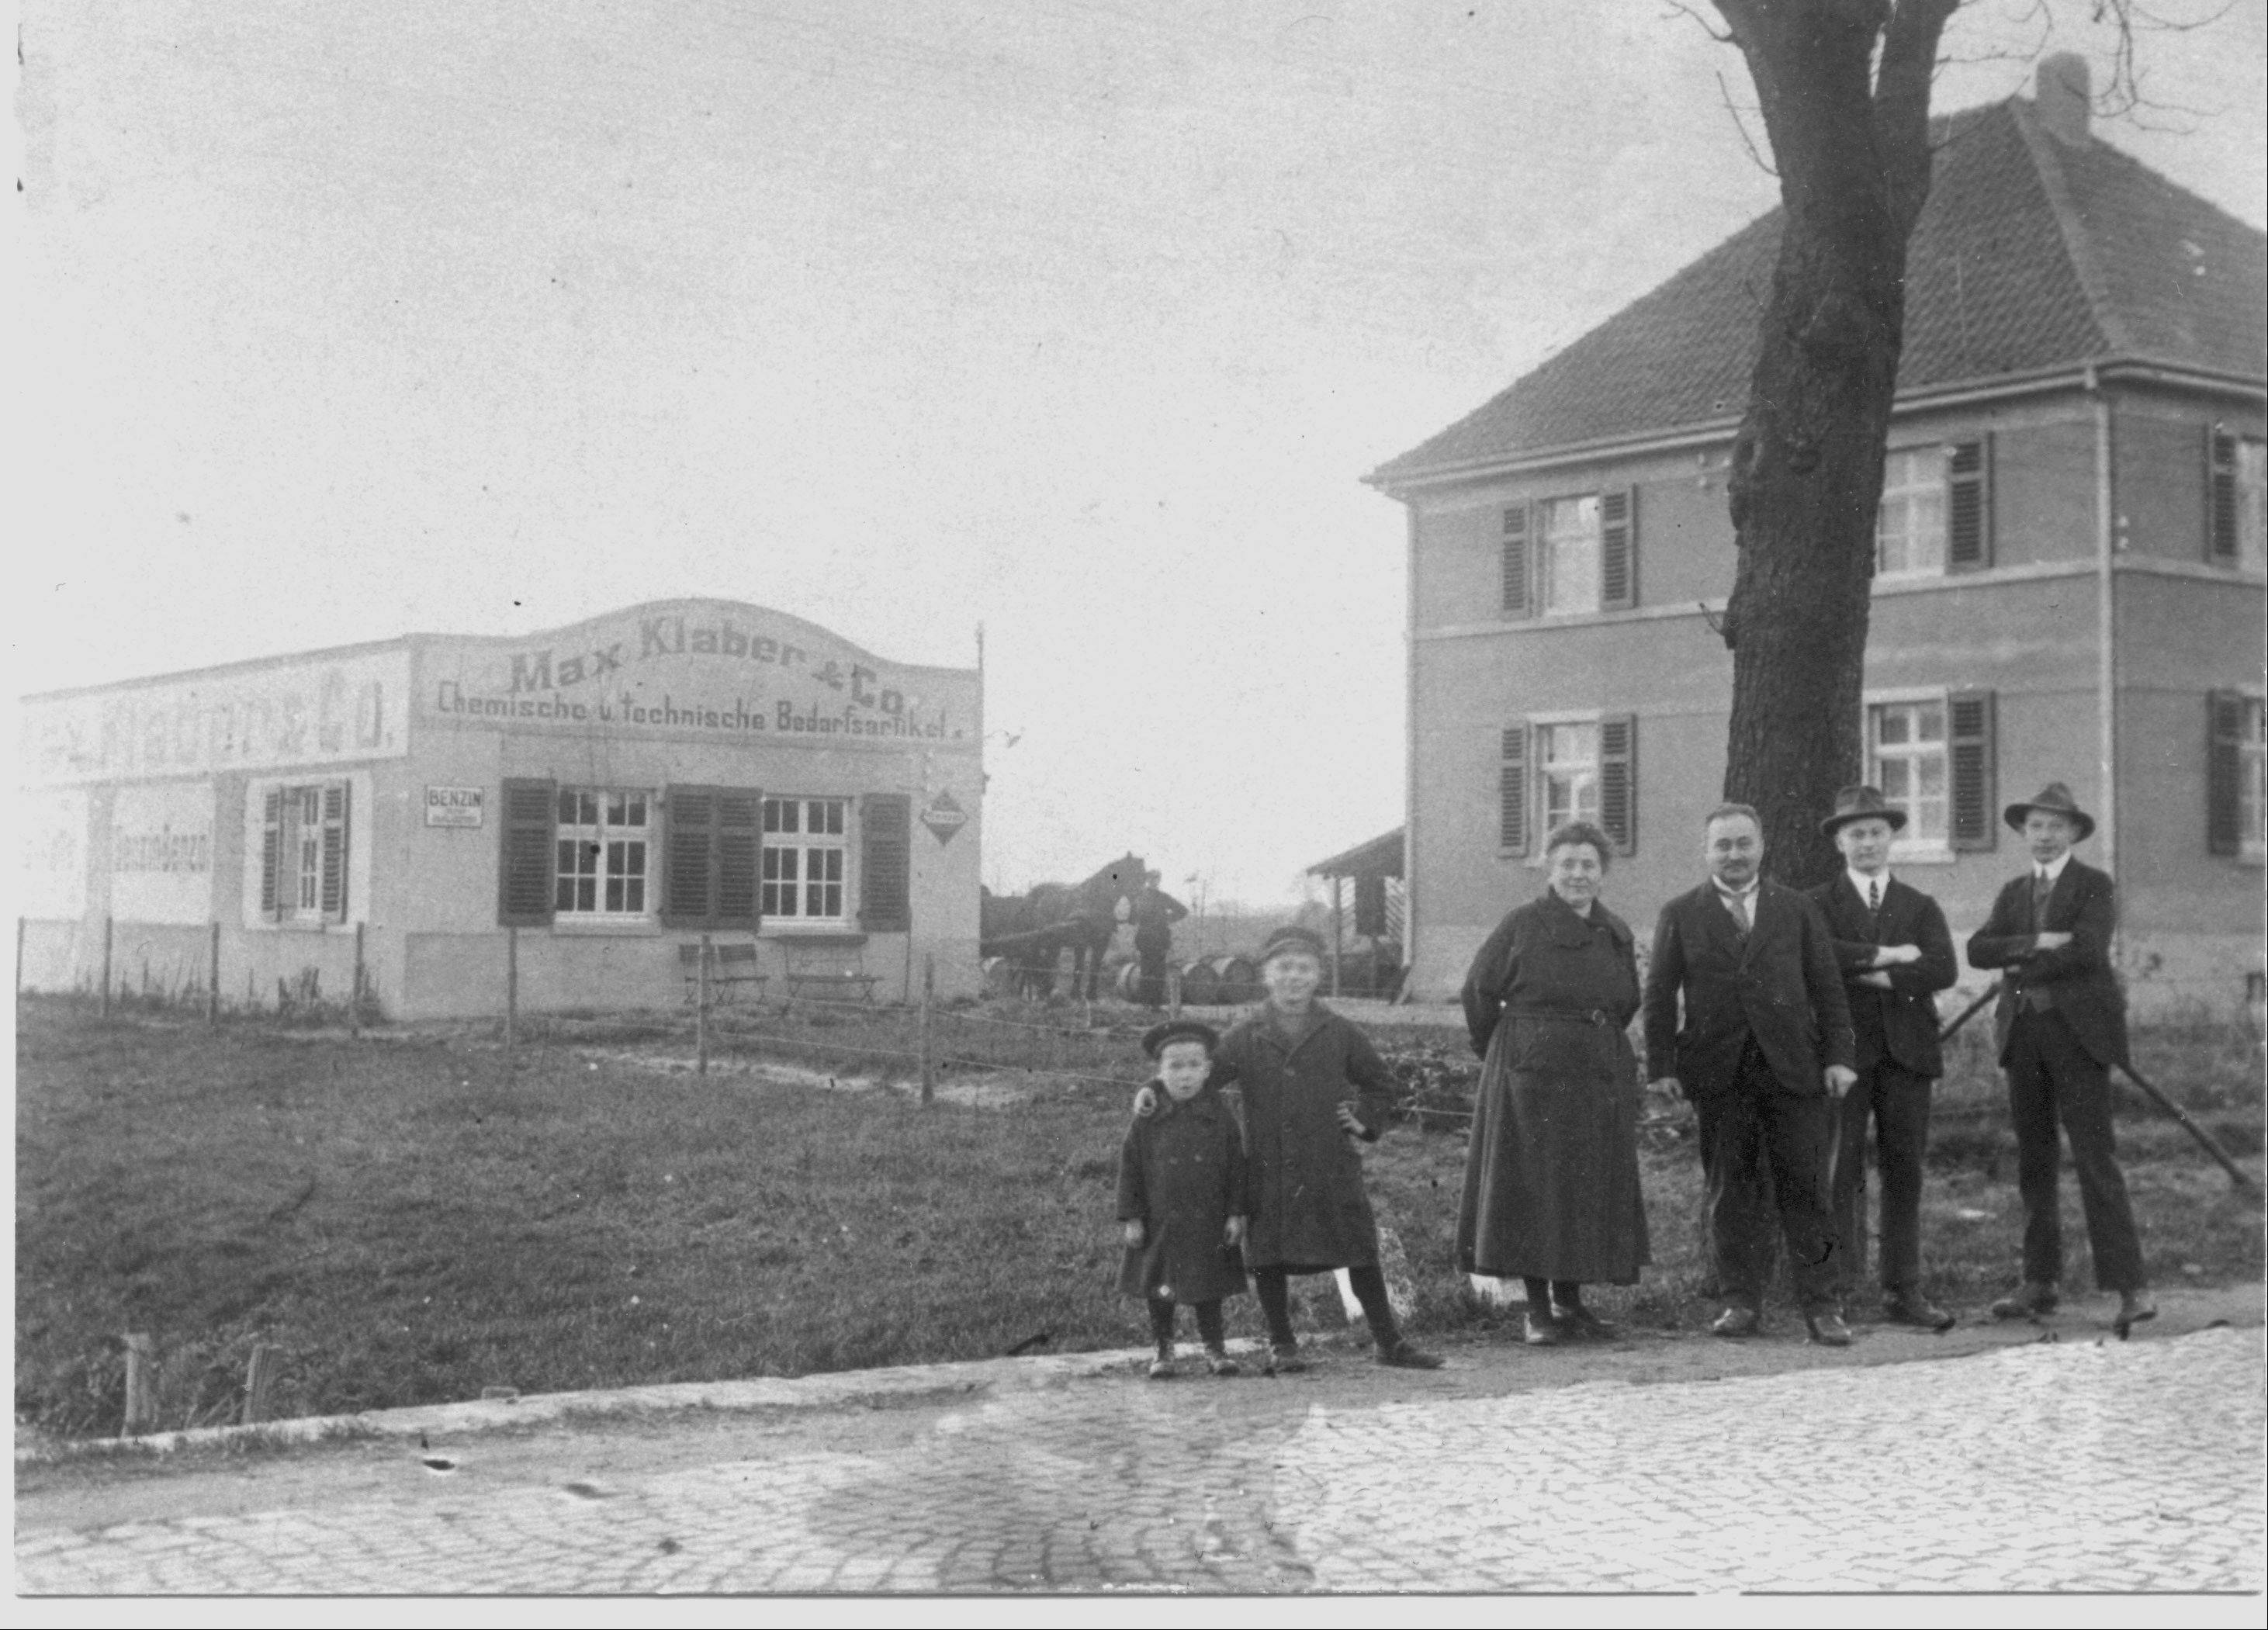 The Klaber family on Gemener Strasse in front of their house and their oil business. The street is now called Ahauser Strasse.